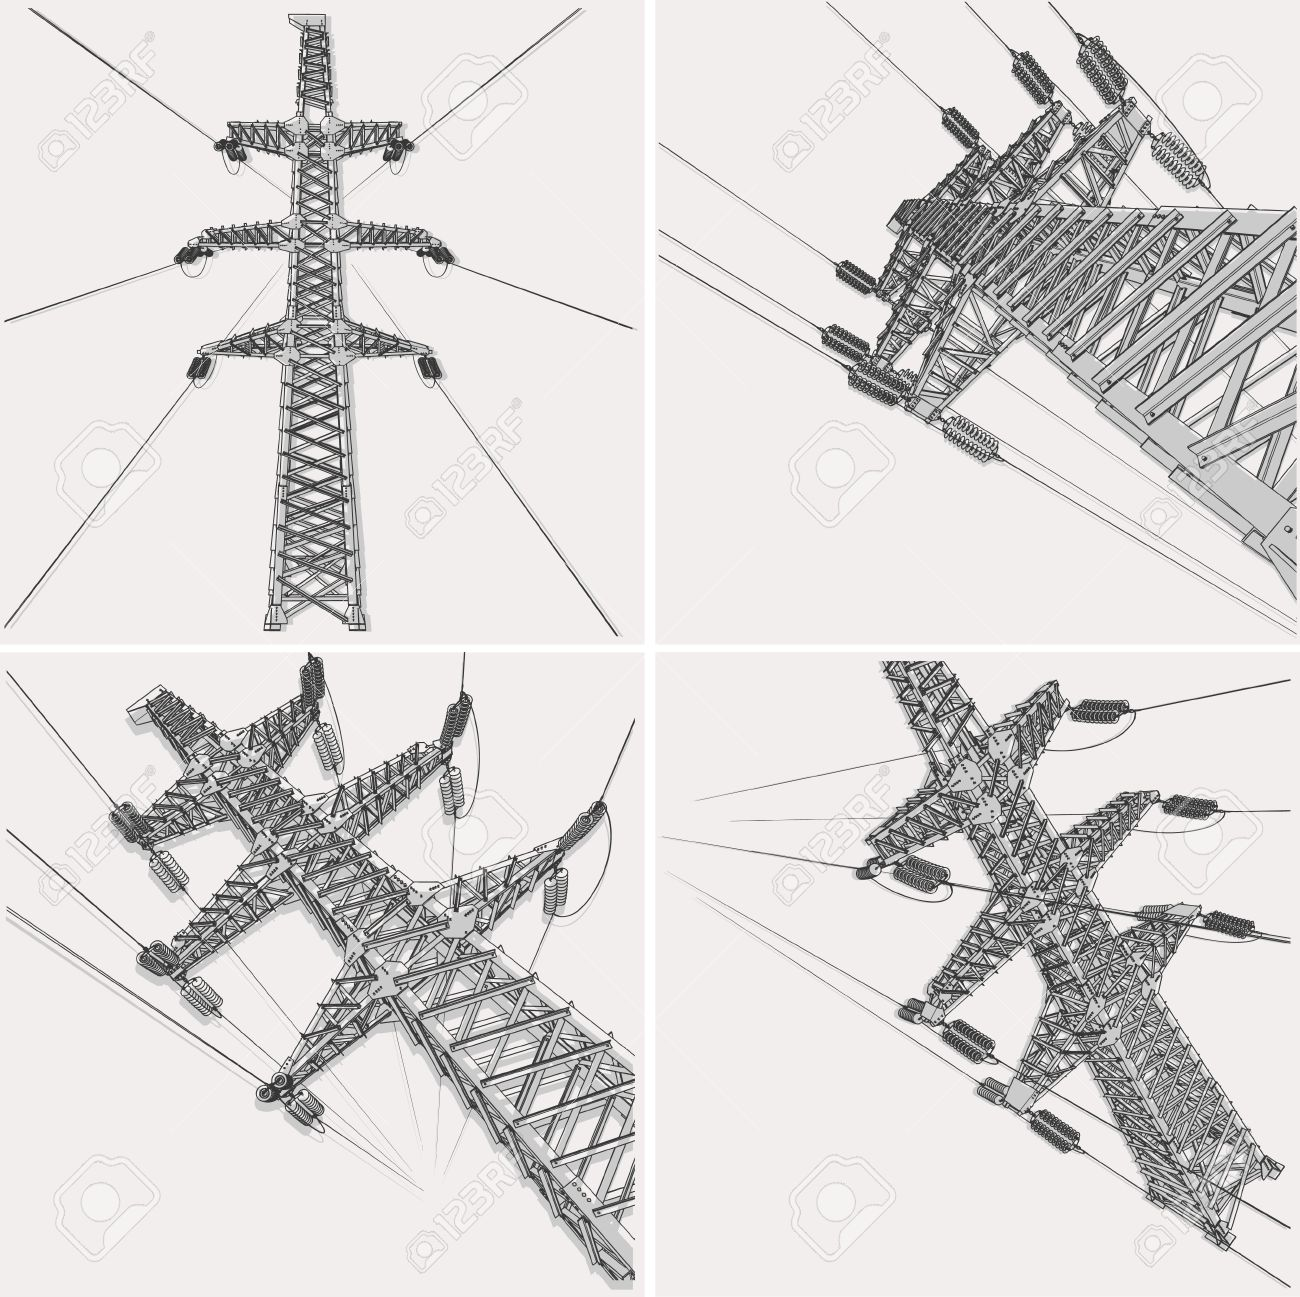 Power Transmission Line, vector illustration Stock Vector - 17049792